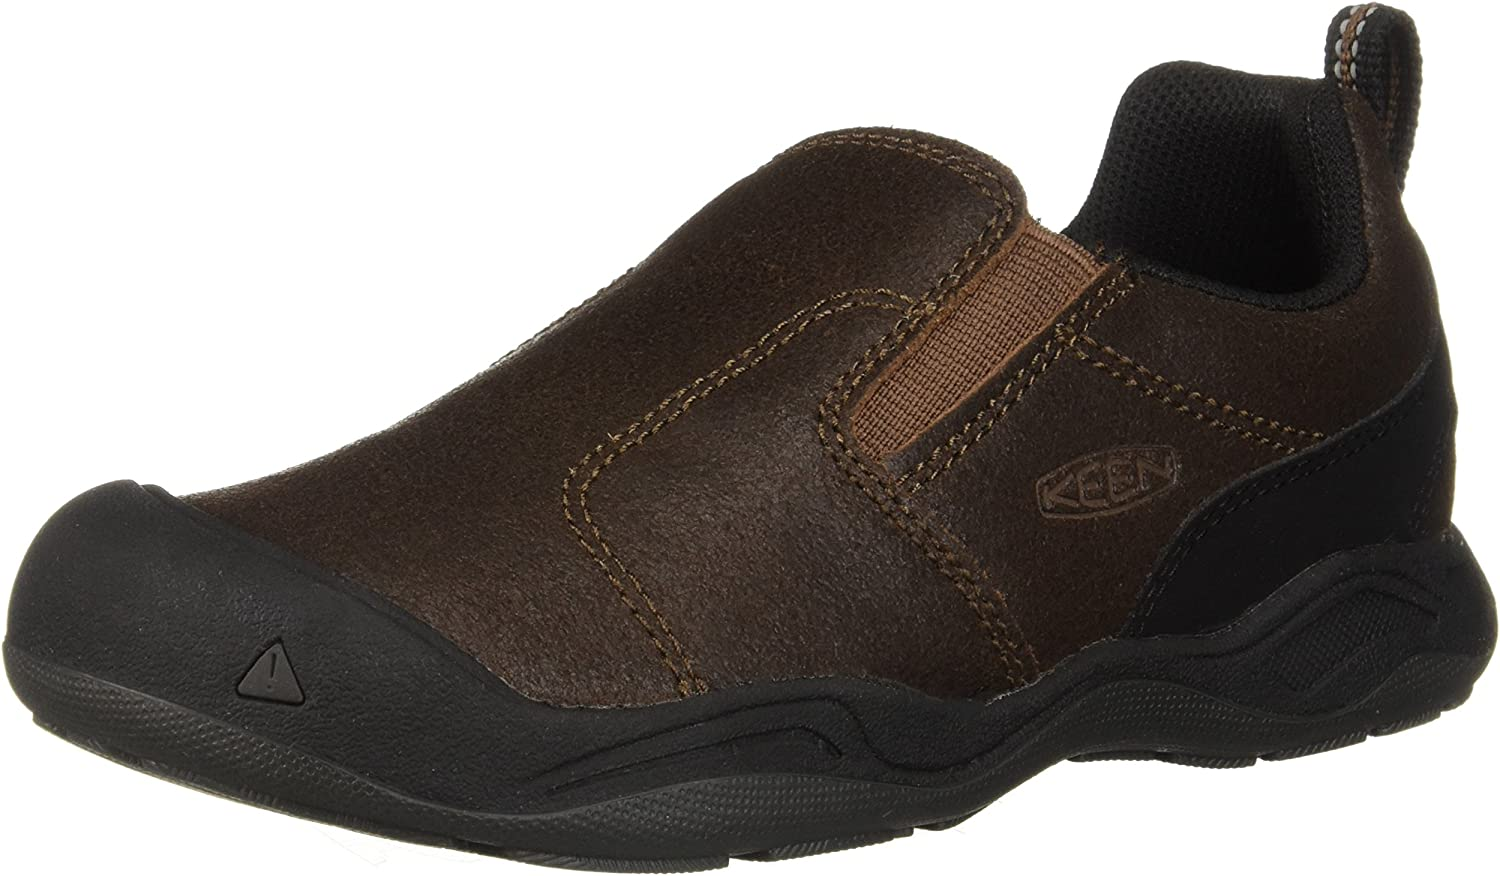 KEEN Jasper Slip-on Hiking Shoe